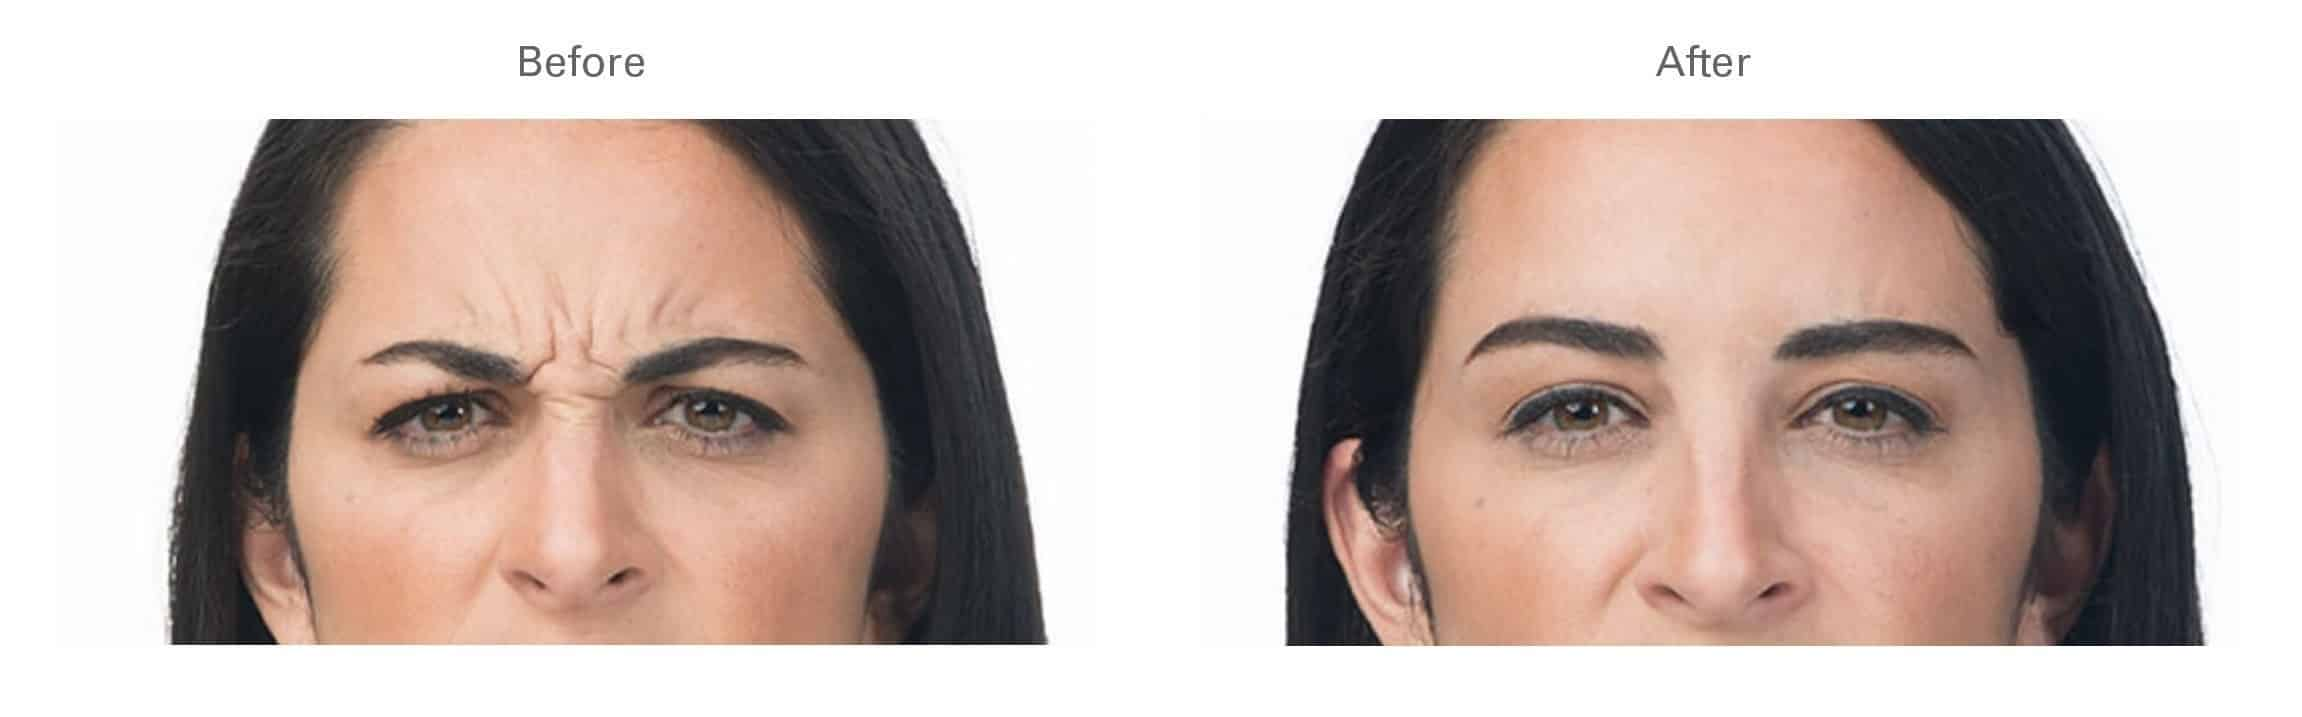 Botox® for Bunny and Frown Lines